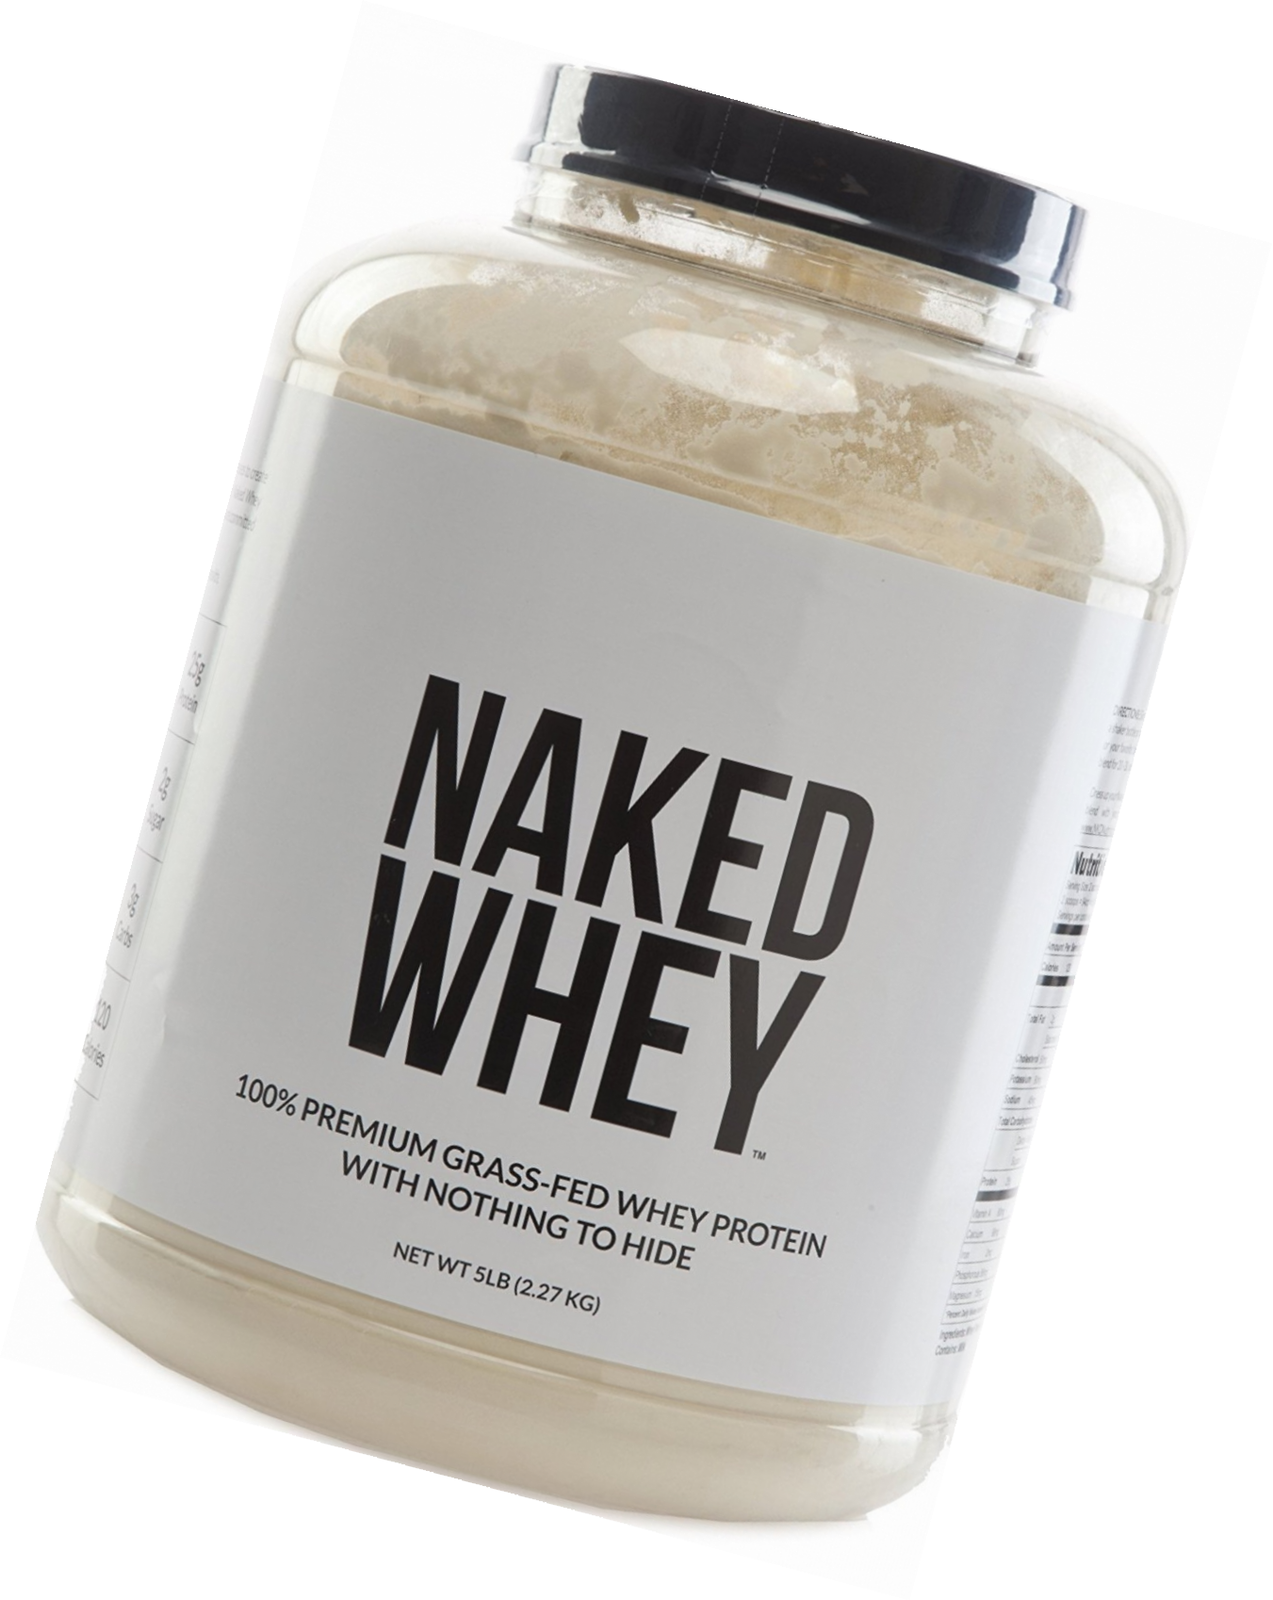 NAKED WHEY 5LB  1 UndenatuROT 100% Grass Fed Whey Protein Powder - US Farms, Bul